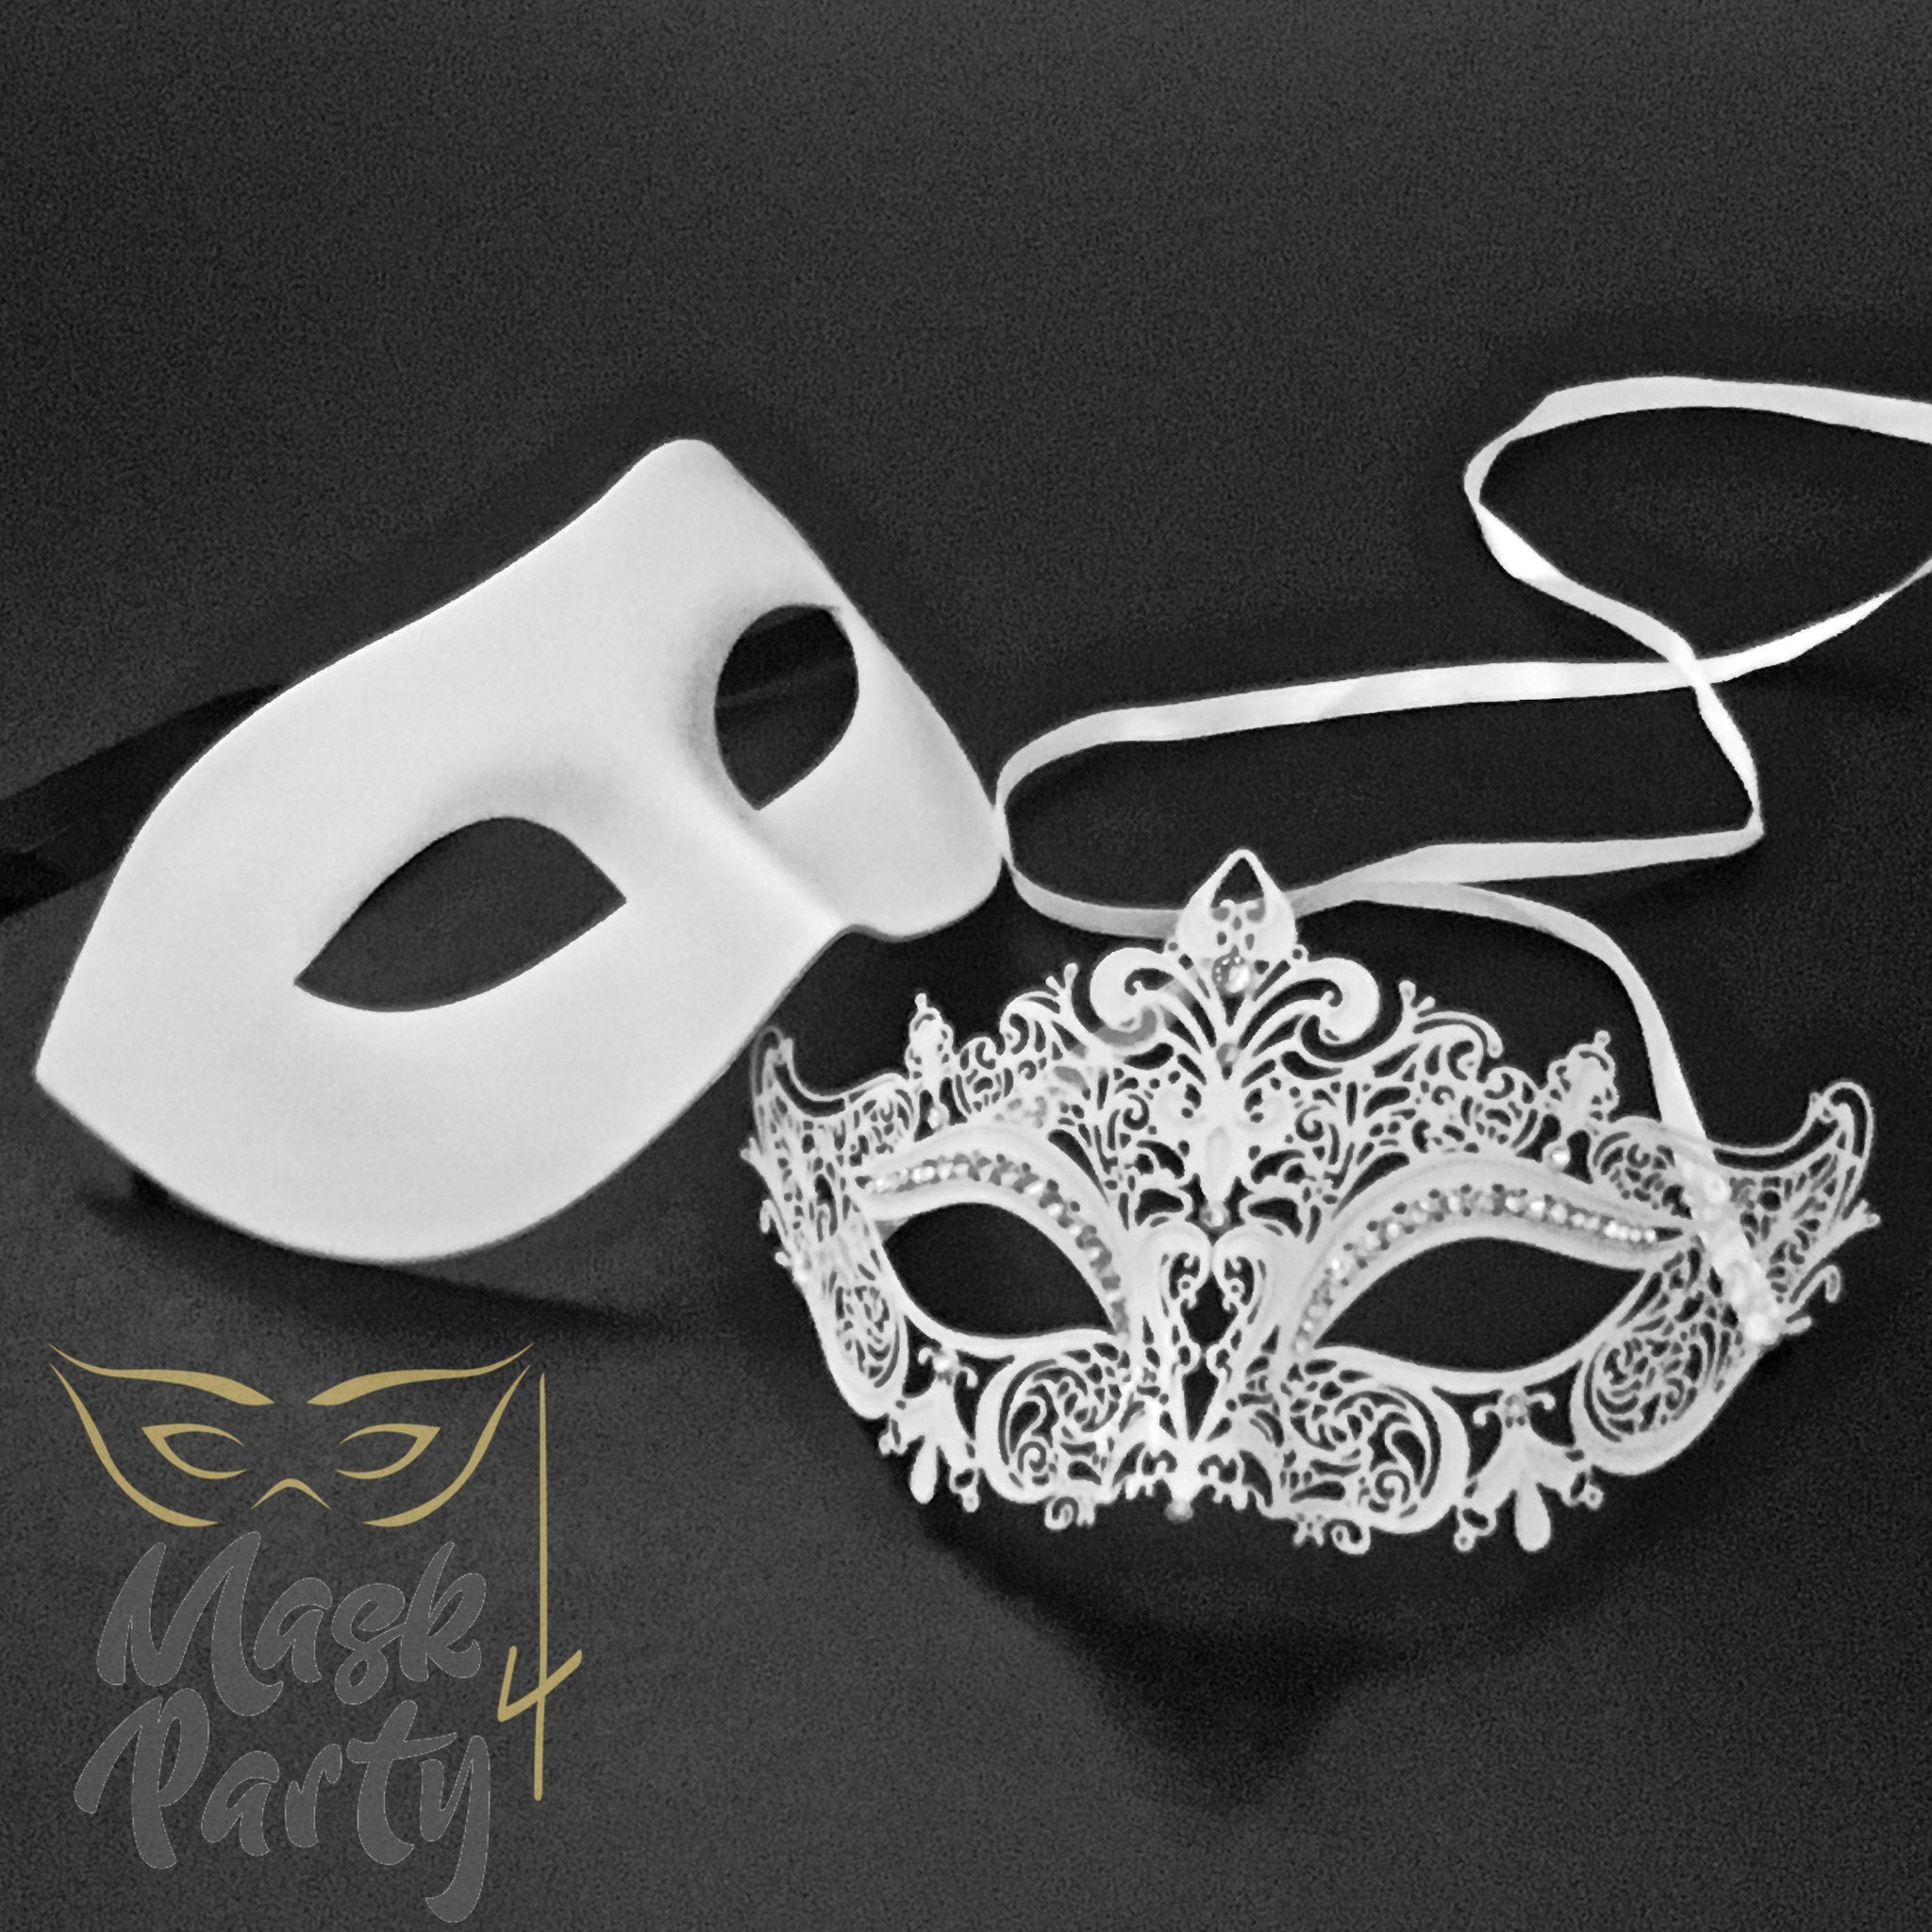 Masquerade Masks - Venetian Eye & Filigree Metal - White - Mask4Party